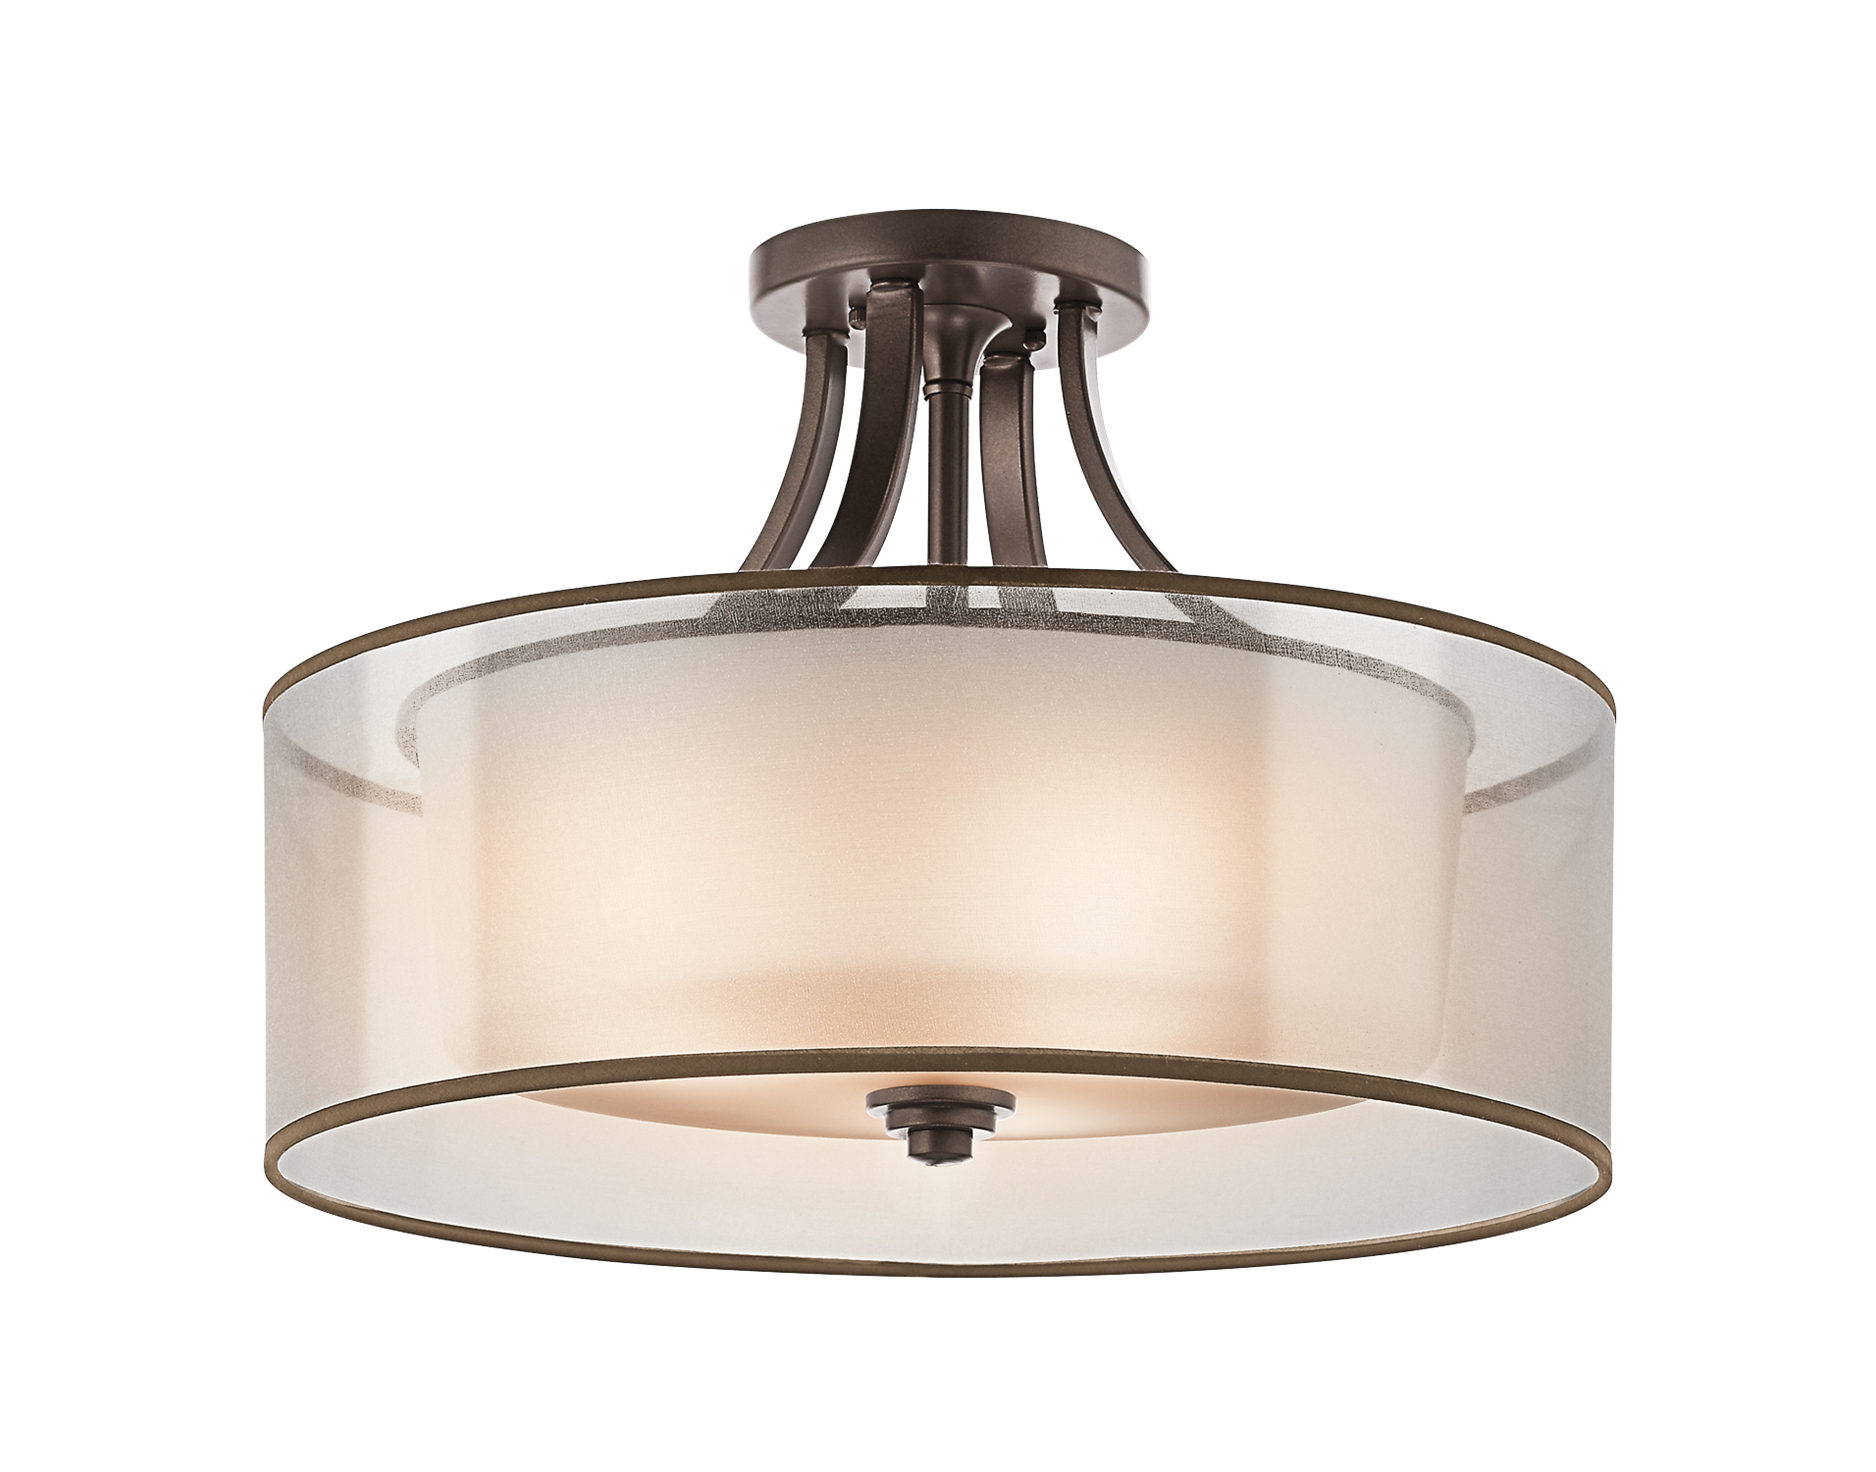 Lacey 4 Light Semi Flush Ceiling Light MIZ